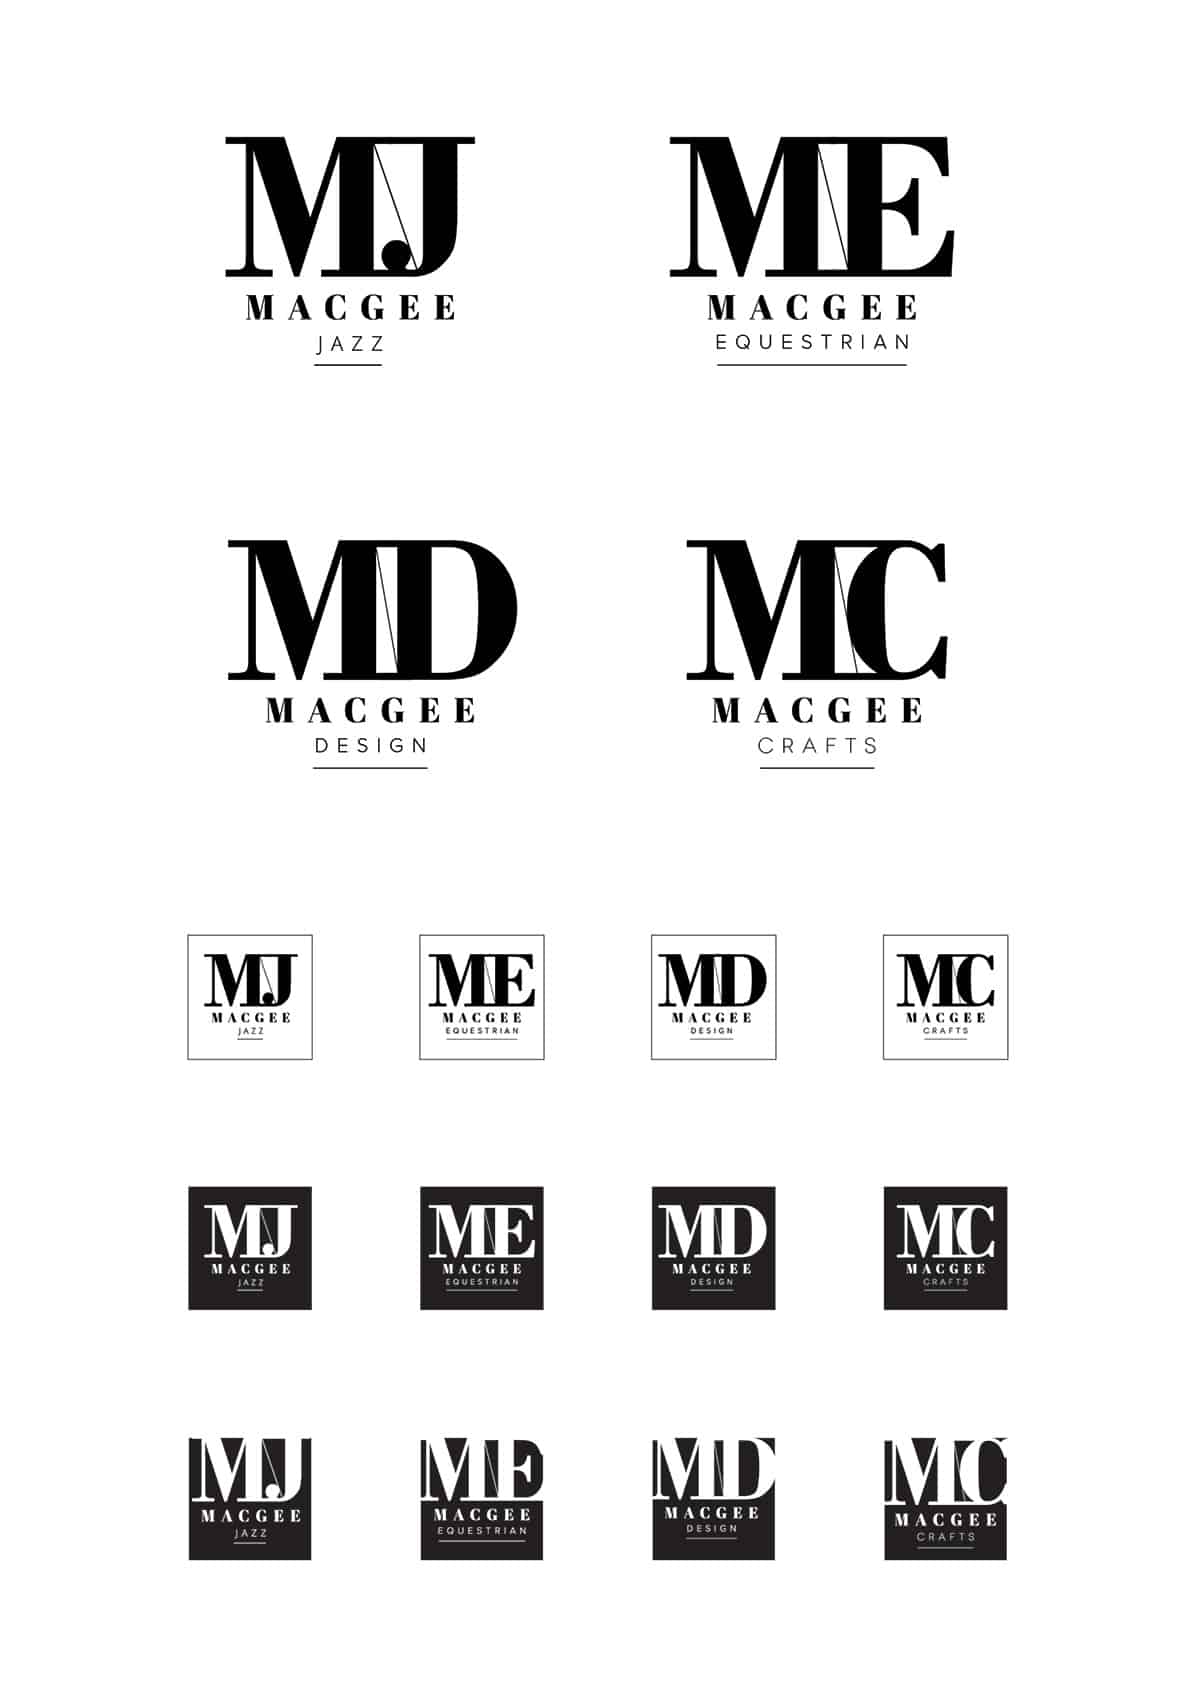 logo concepts for Macgee Jazz Brand